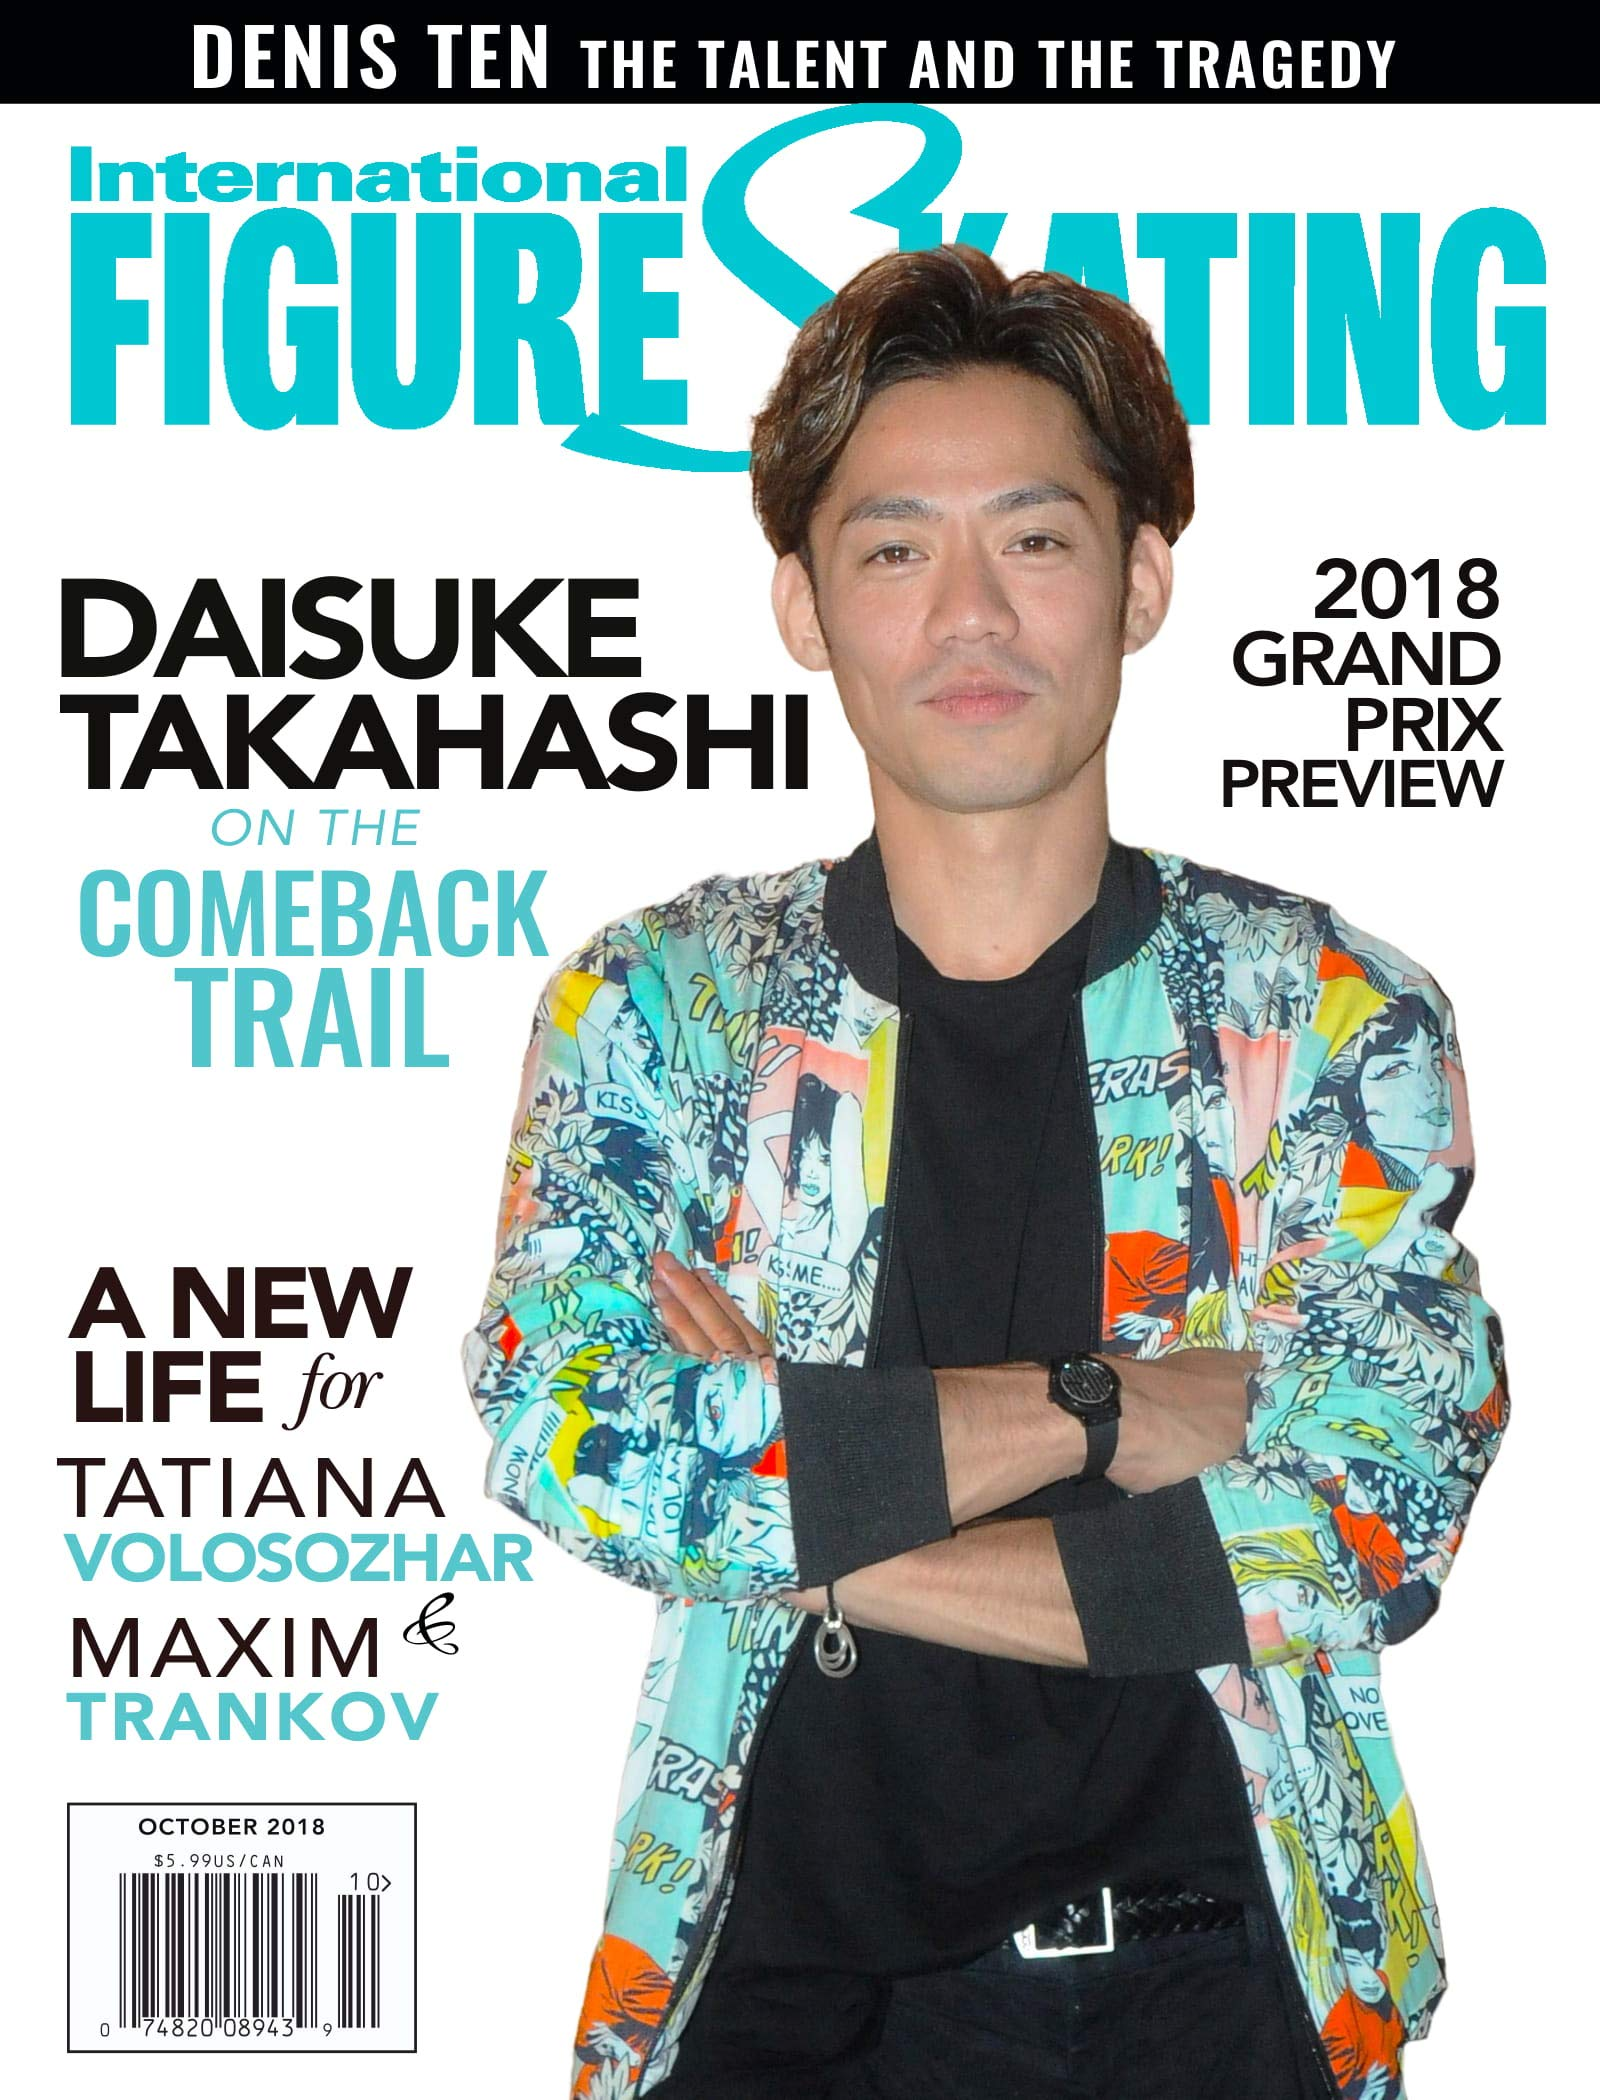 International Figure Skating [US] October 2018 (単号) <高橋大輔選手表紙号>